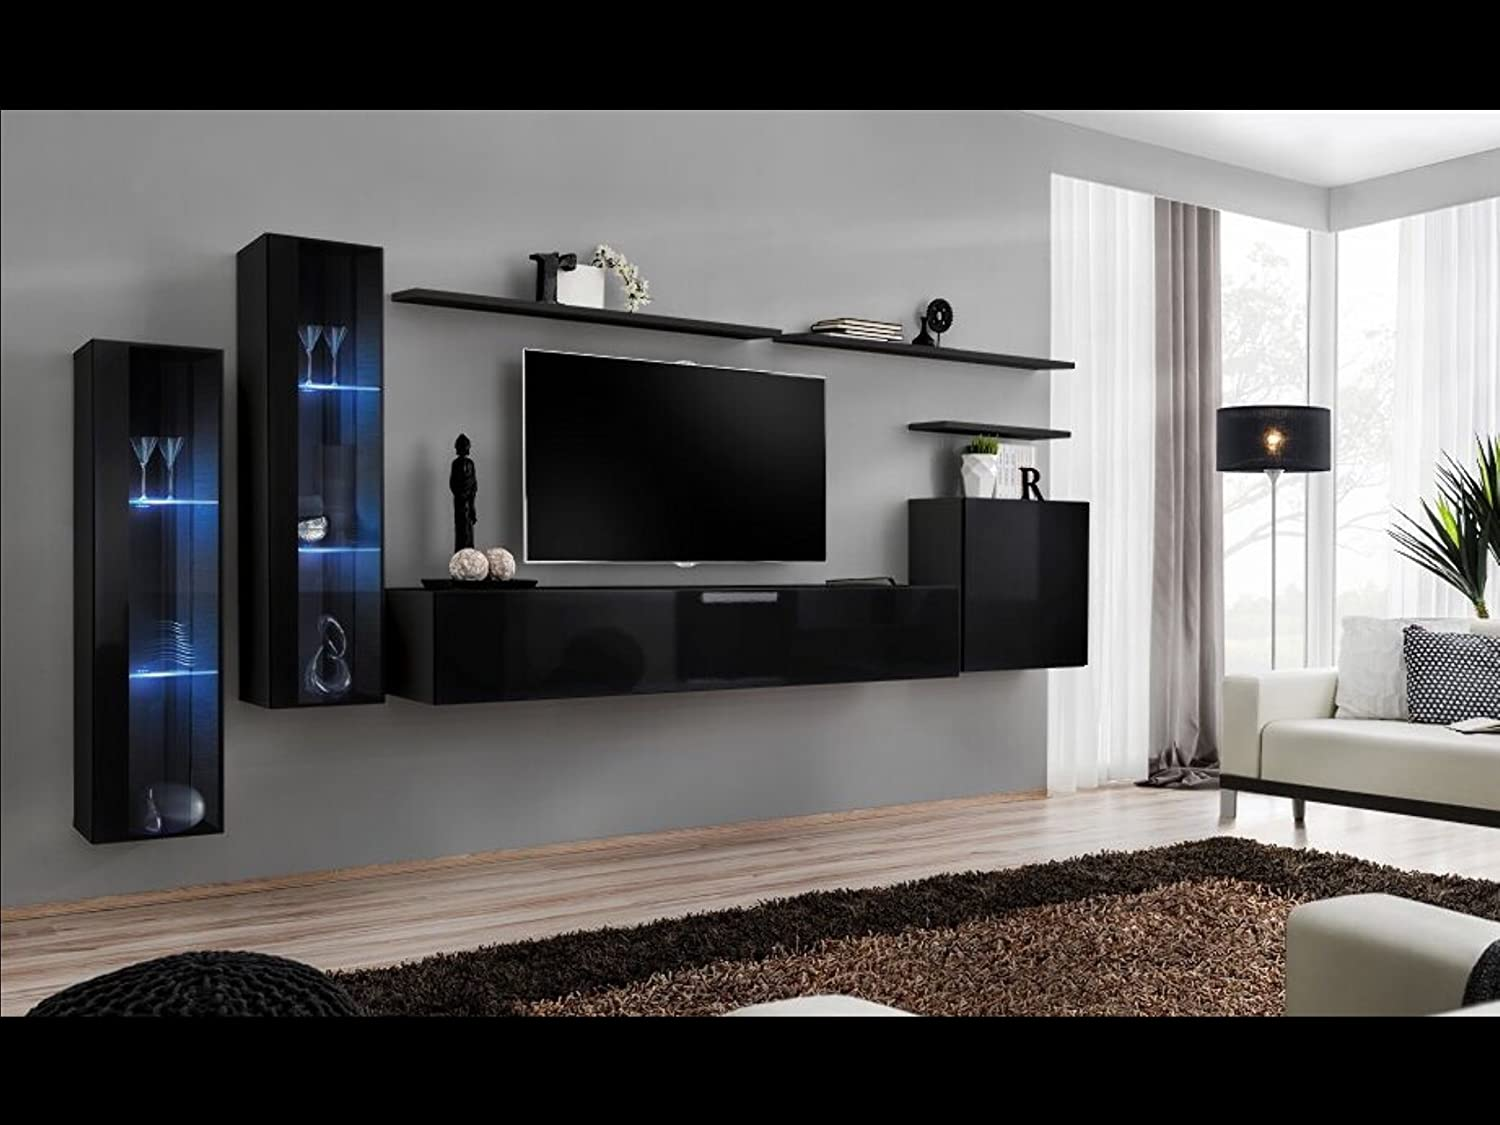 Shift XI   Seattle Collection High Gloss Living Room Furniture   Floating TV  Cabinet   European Design Wall Mounted Cabinets With LED Lighting (Black ...